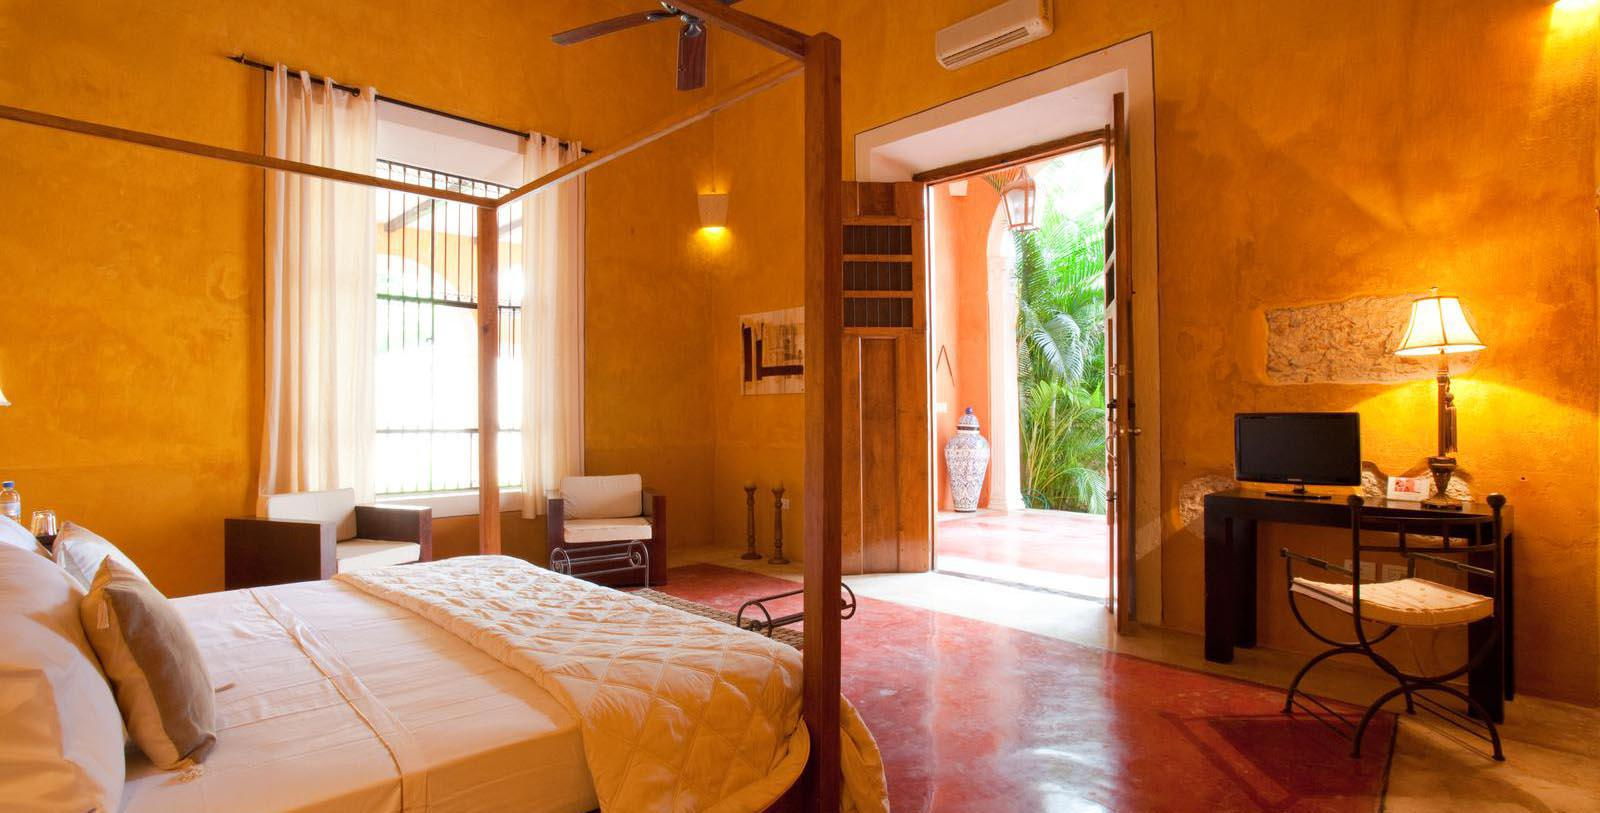 Image of Guestroom Interior, Hotel Hacienda Merida, Mexico, 1700s, Member of Historic Hotels Worldwide, Accommodations